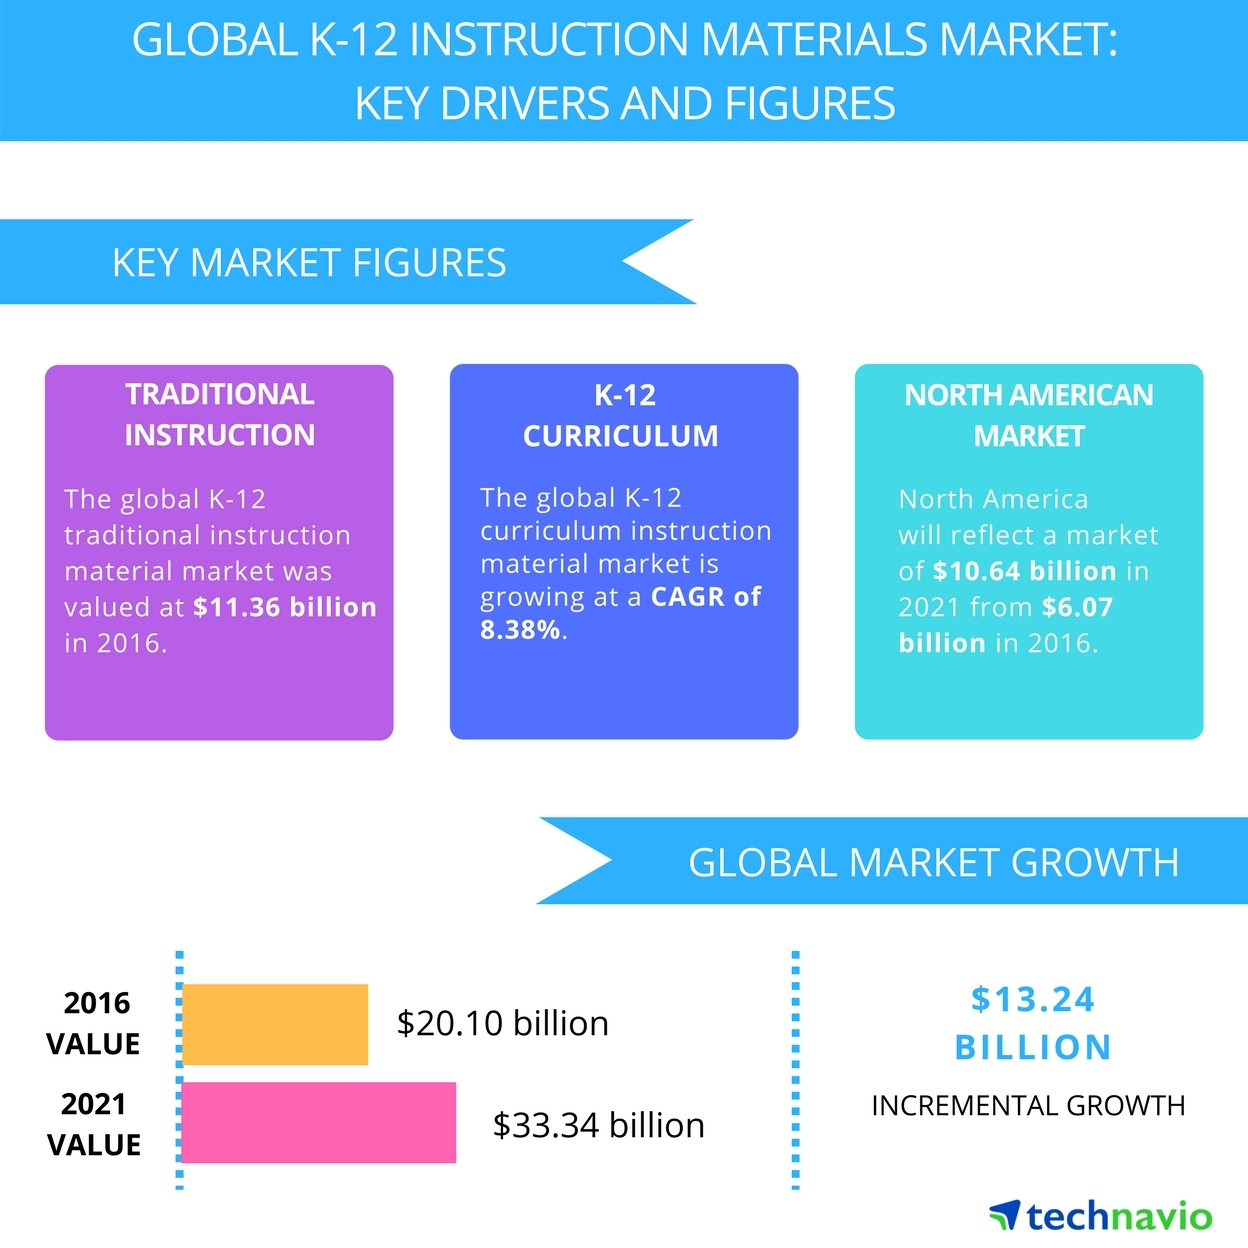 Technavio has published a new report on the global K-12 instruction material market from 2017-2021. (Photo: Business Wire)